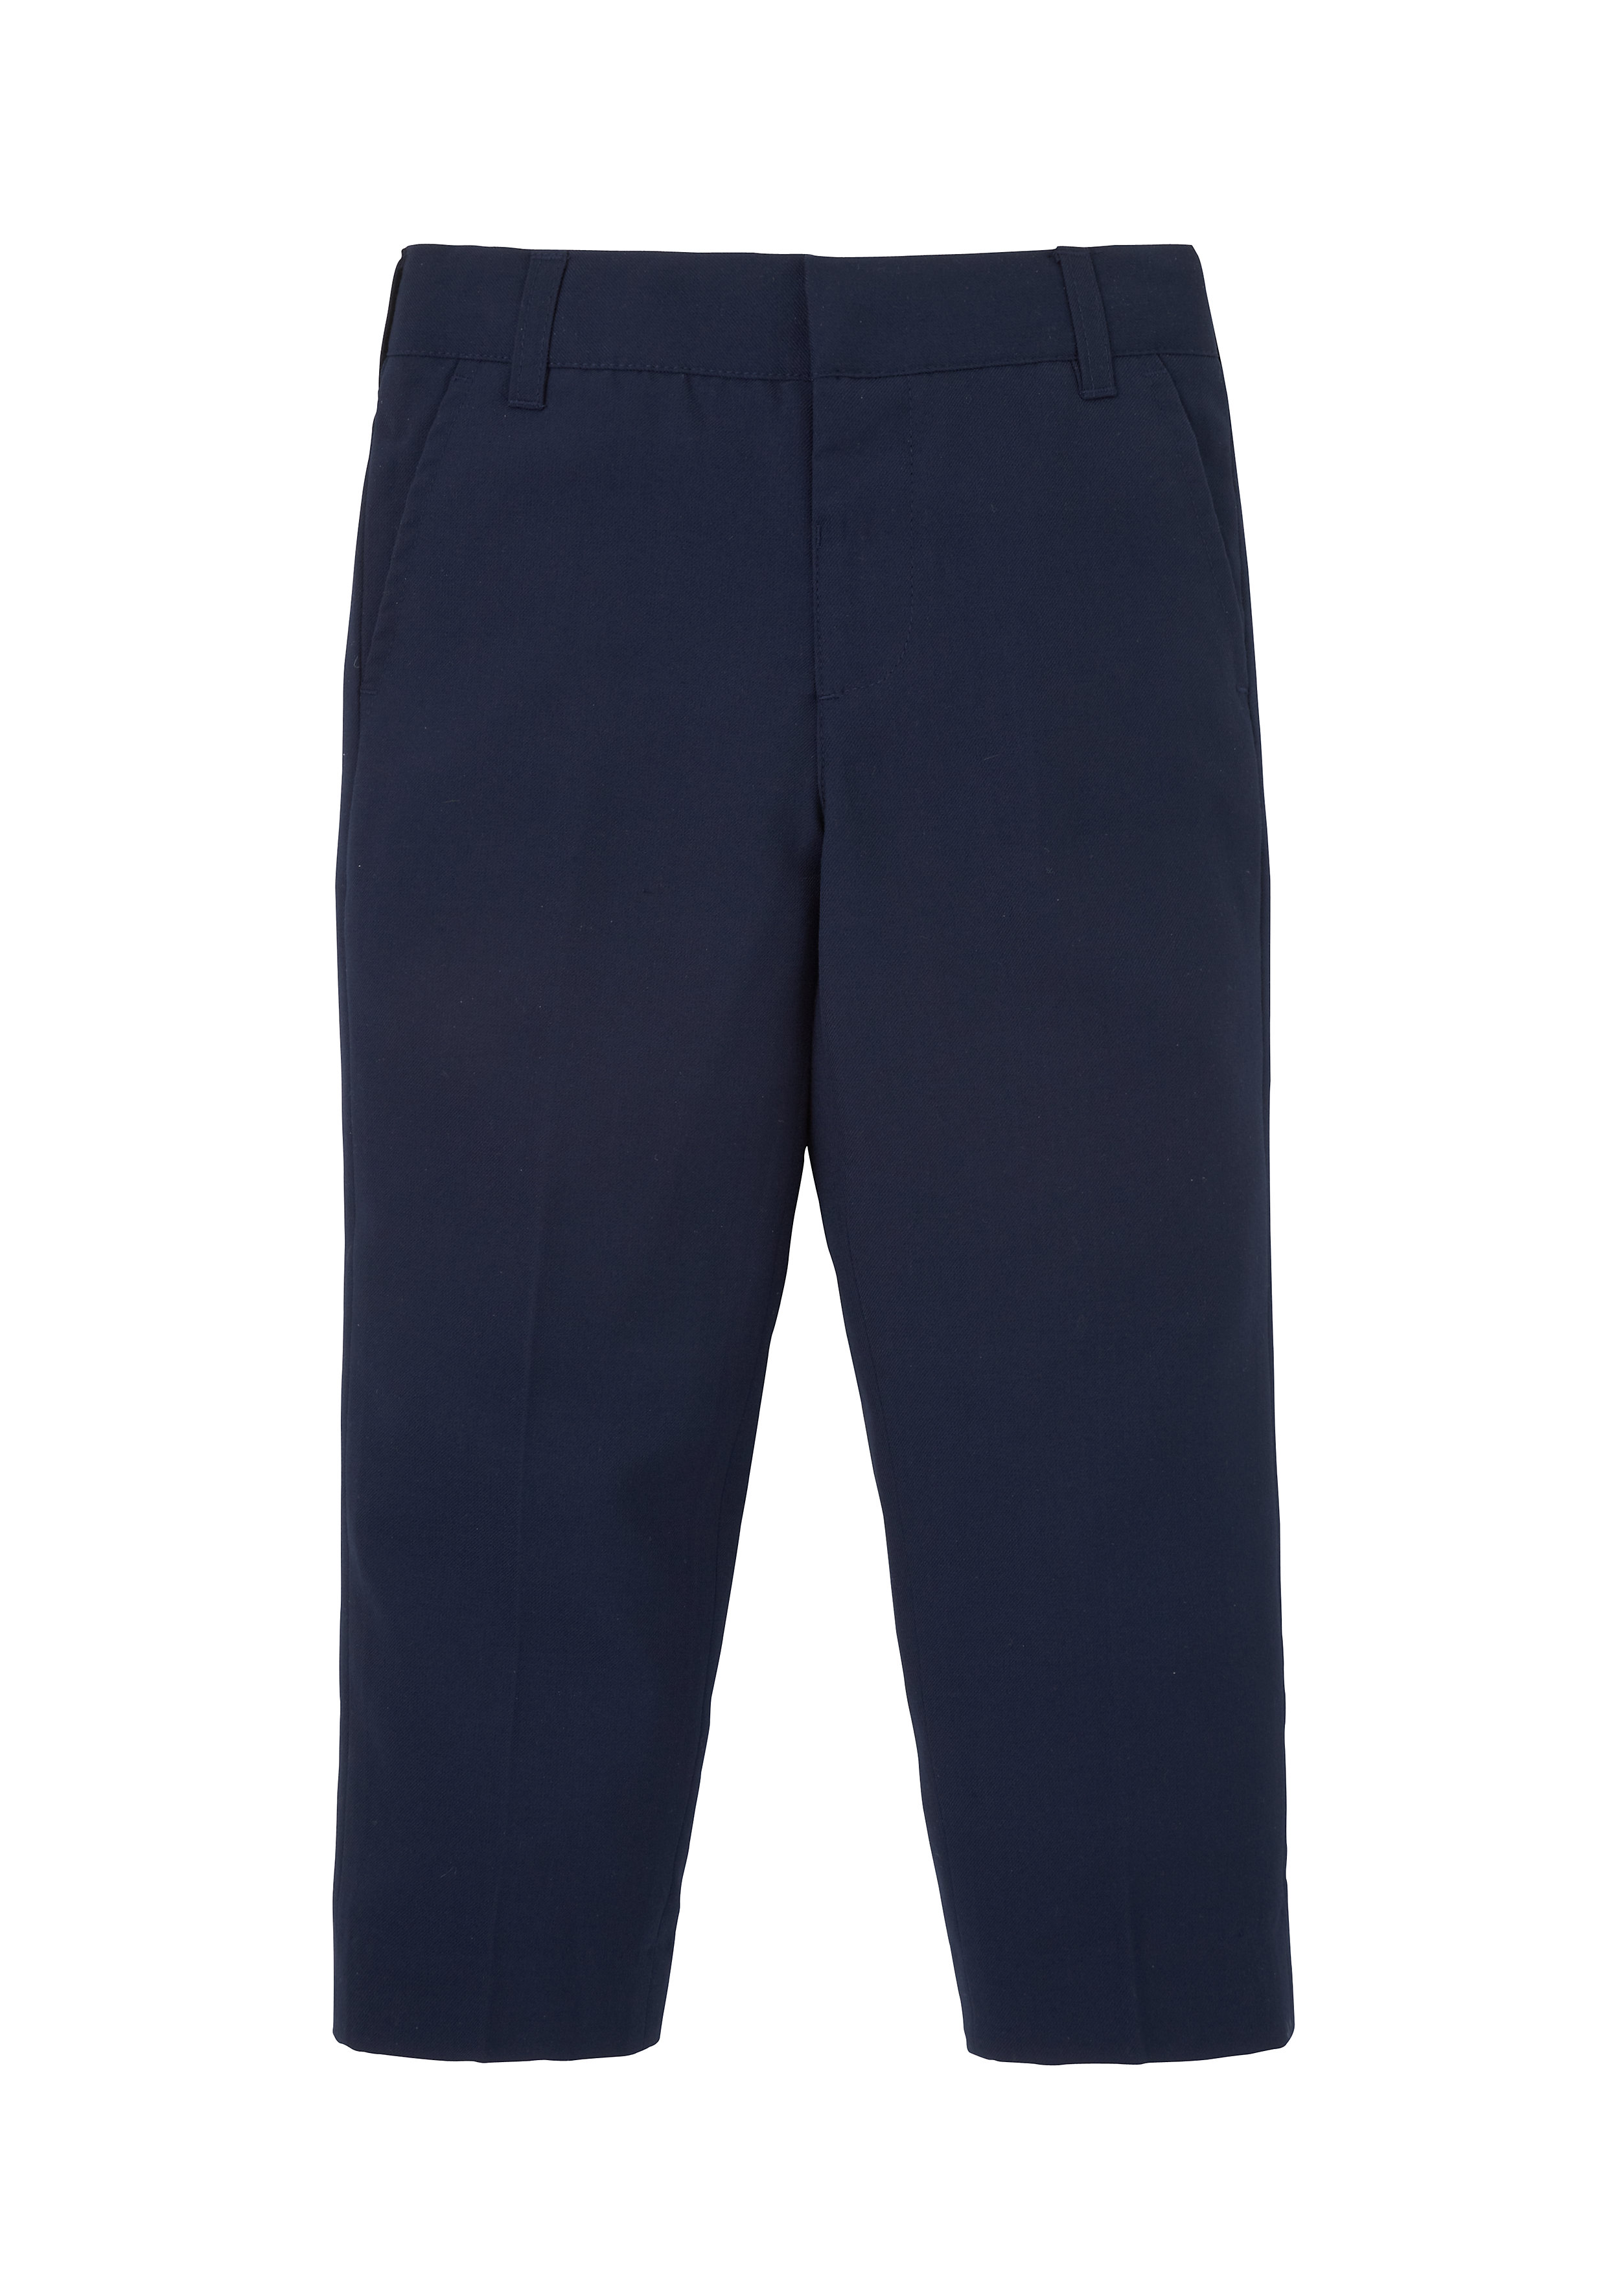 Mothercare | Boys Smart Trousers - Navy